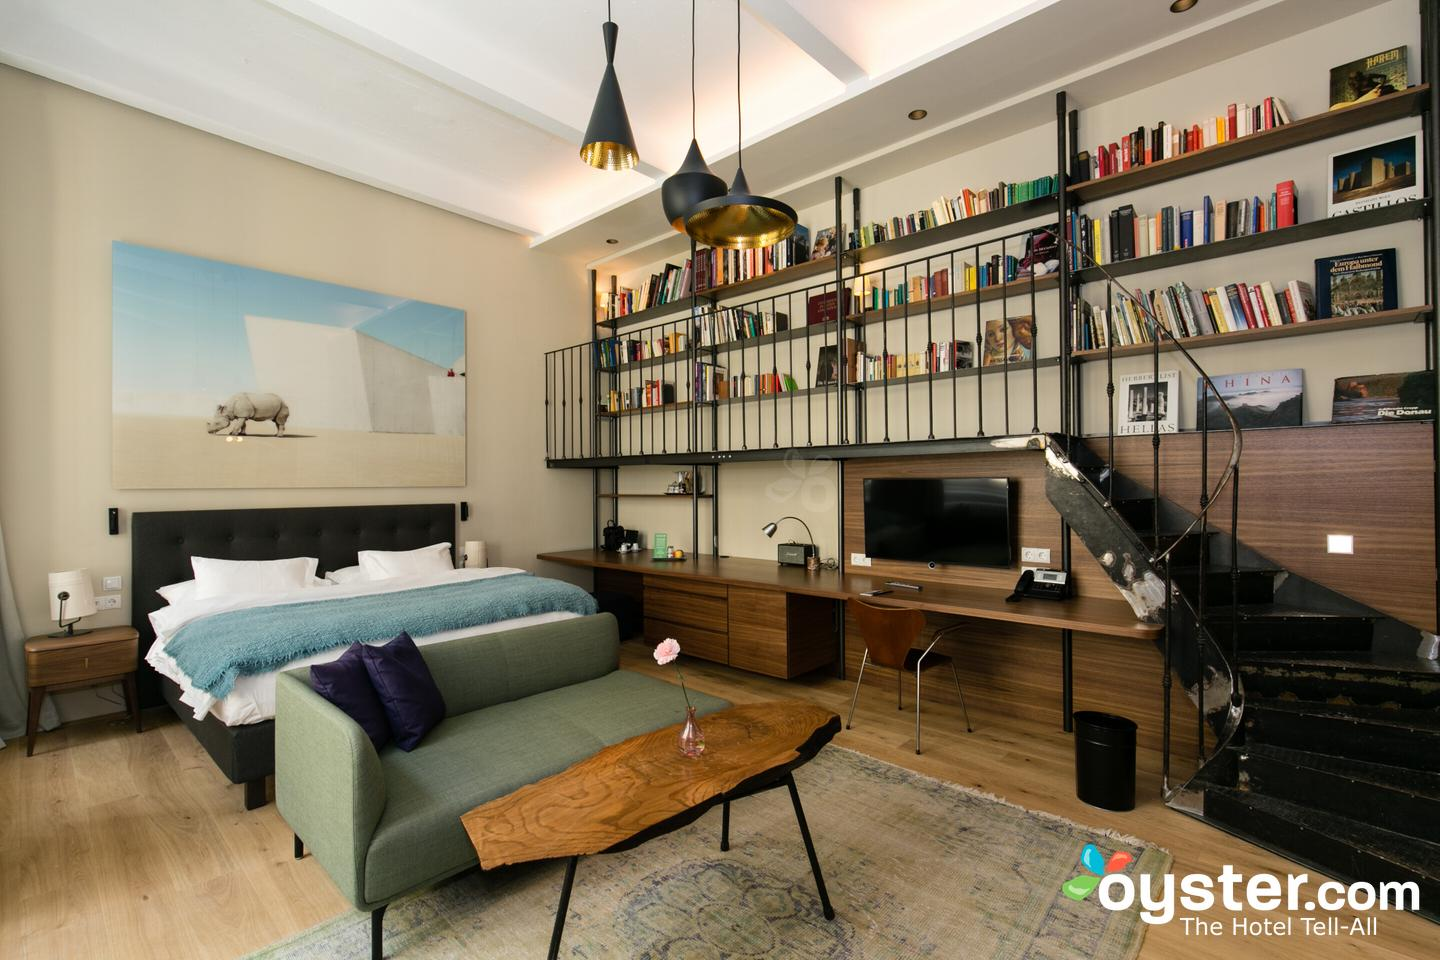 Hotel Altstadt Vienna Hotel Altstadt Vienna: Review + Updated Rates (oct 2019